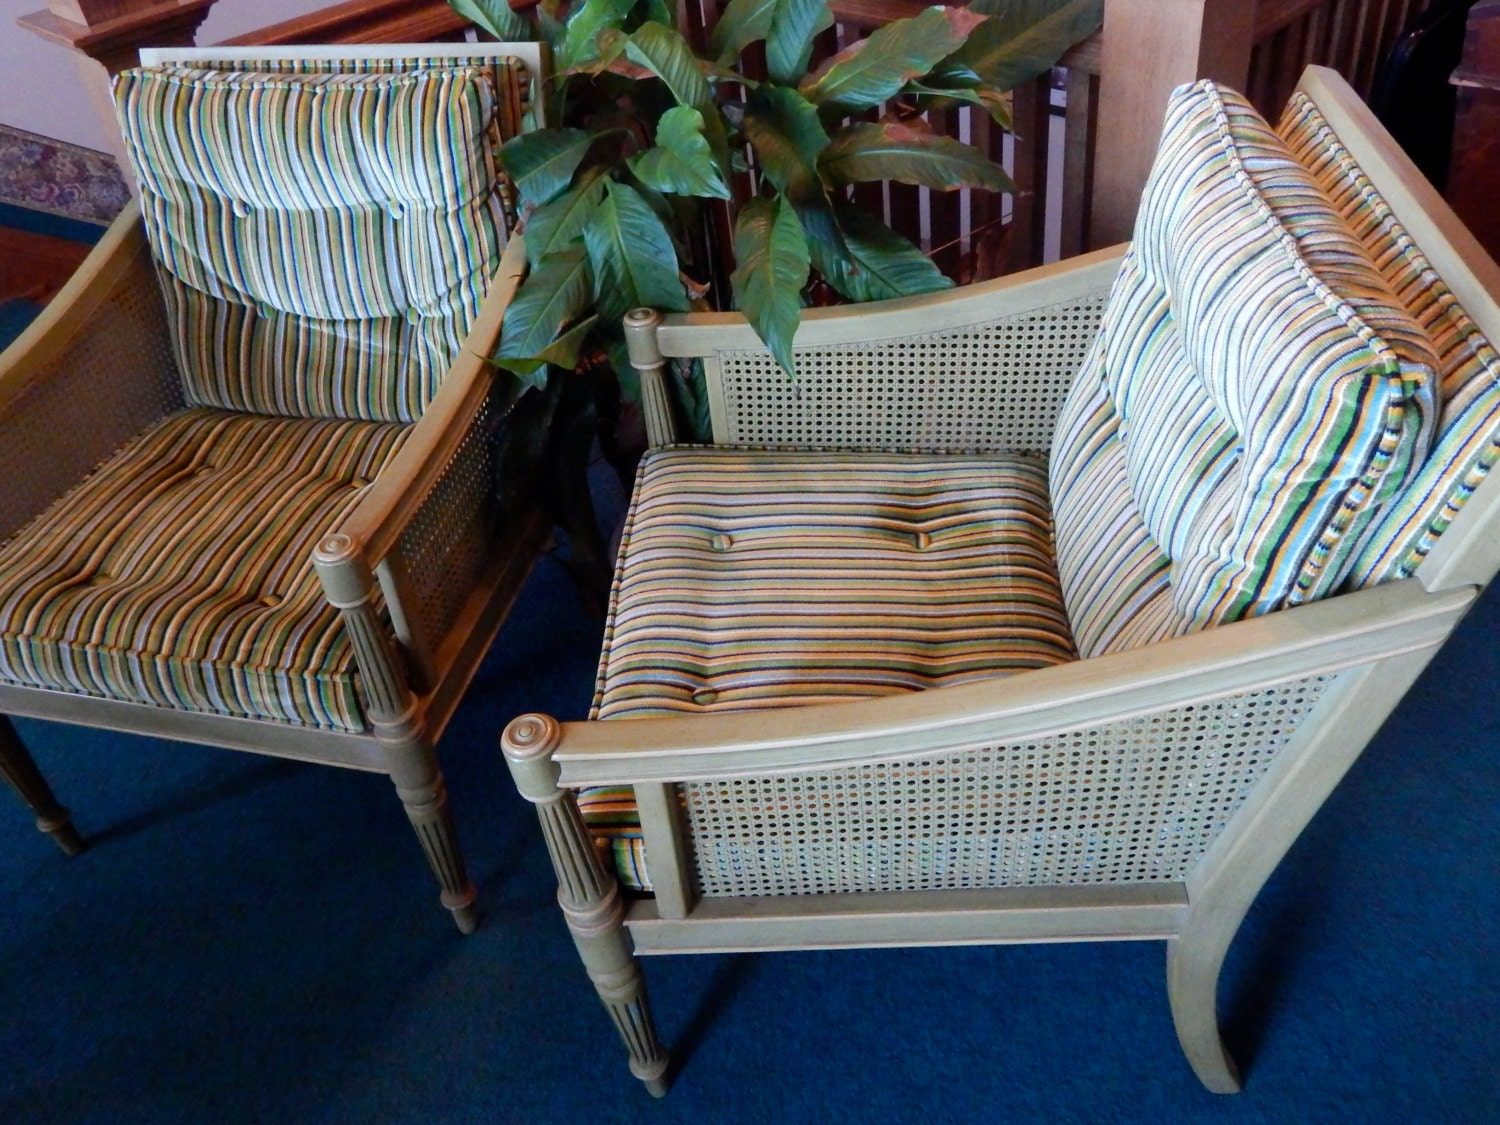 Pair of Ethan Allen Casual Chairs with Wicker Sides and : ilfullxfull640351921q4l7 from www.etsy.com size 1500 x 1125 jpeg 533kB